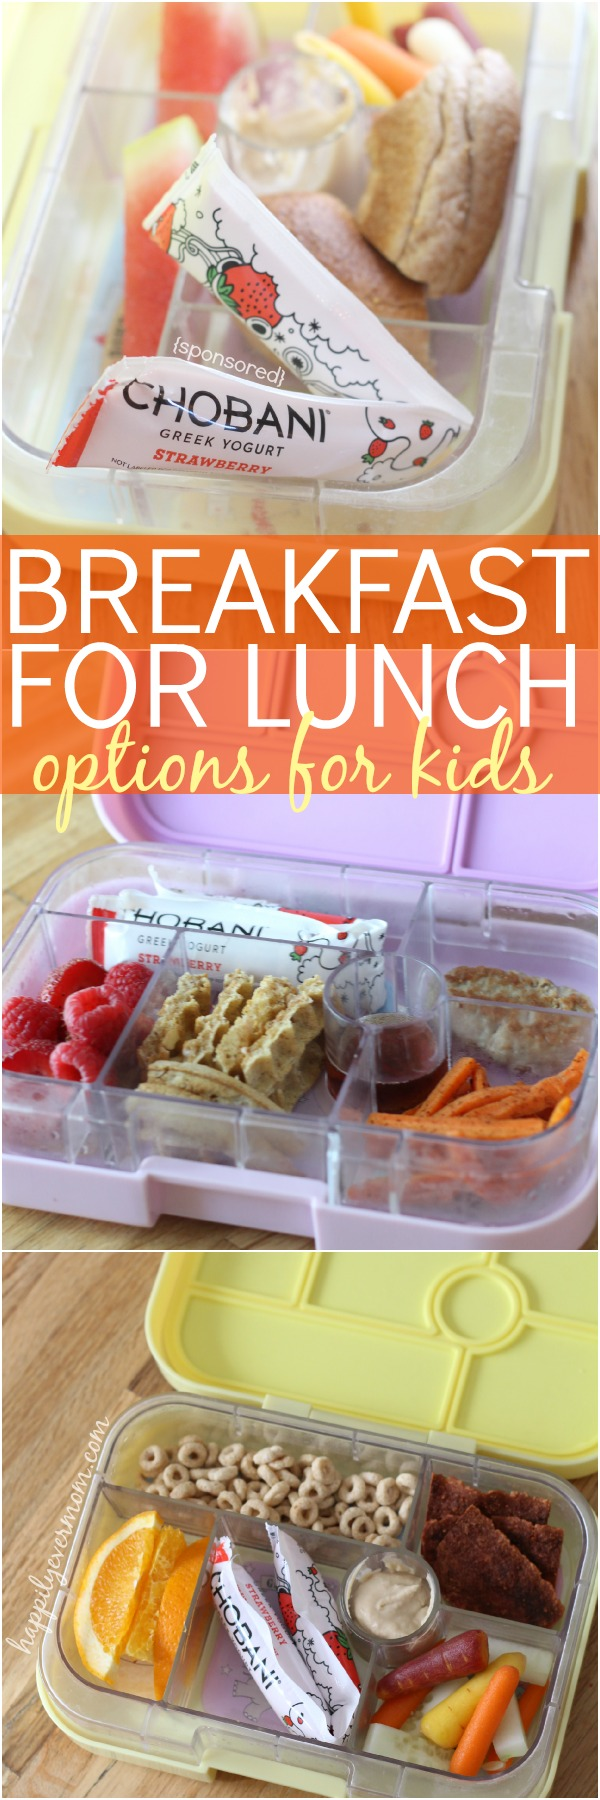 Finally ~ ideas for kids lunches that AREN'T sandwiches!!